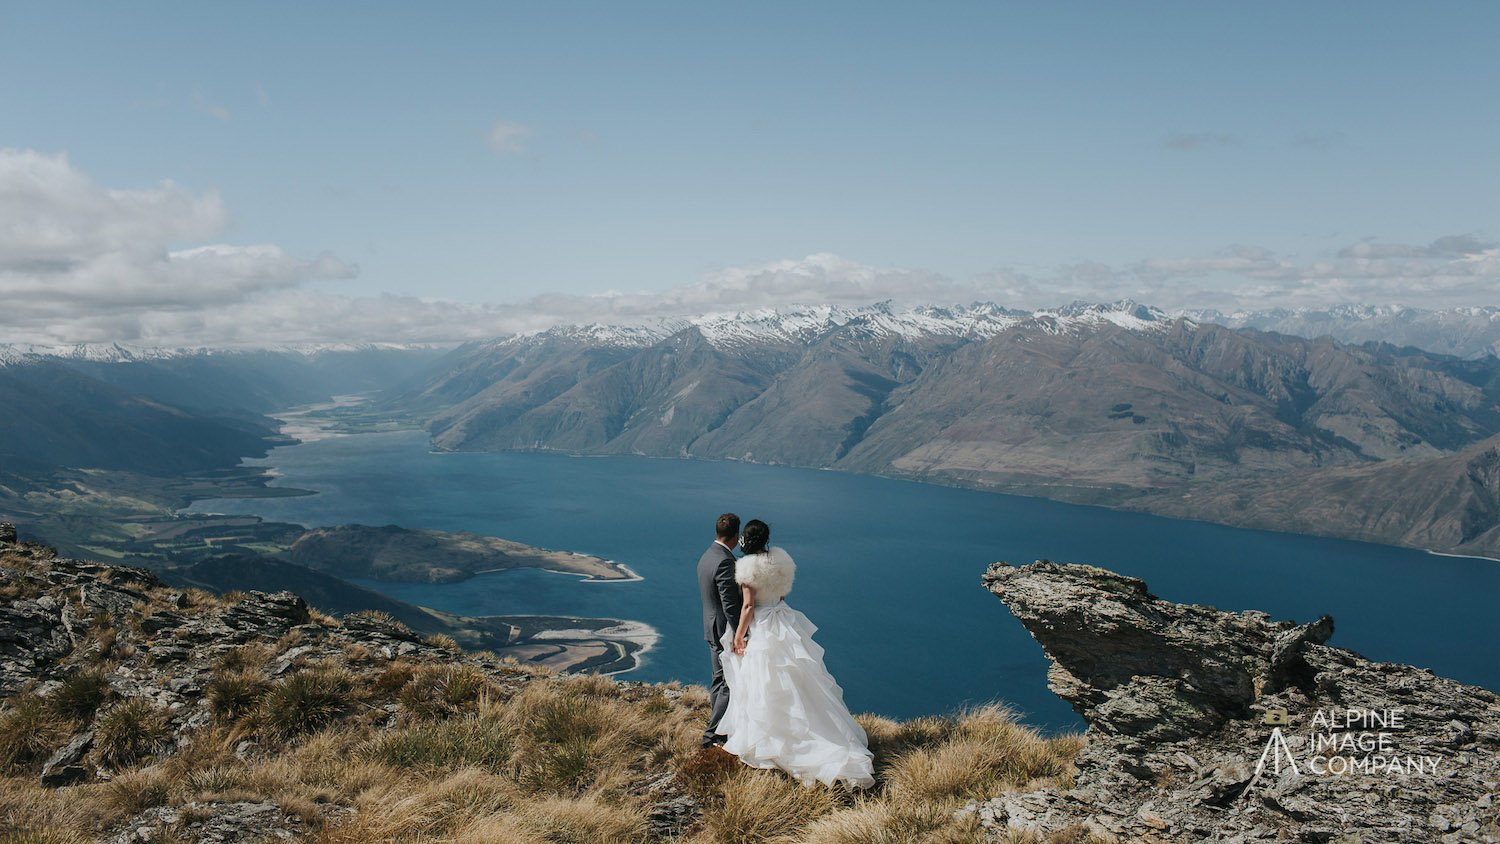 Lake Hawea View Wedding Venue Wanaka New Zealand9